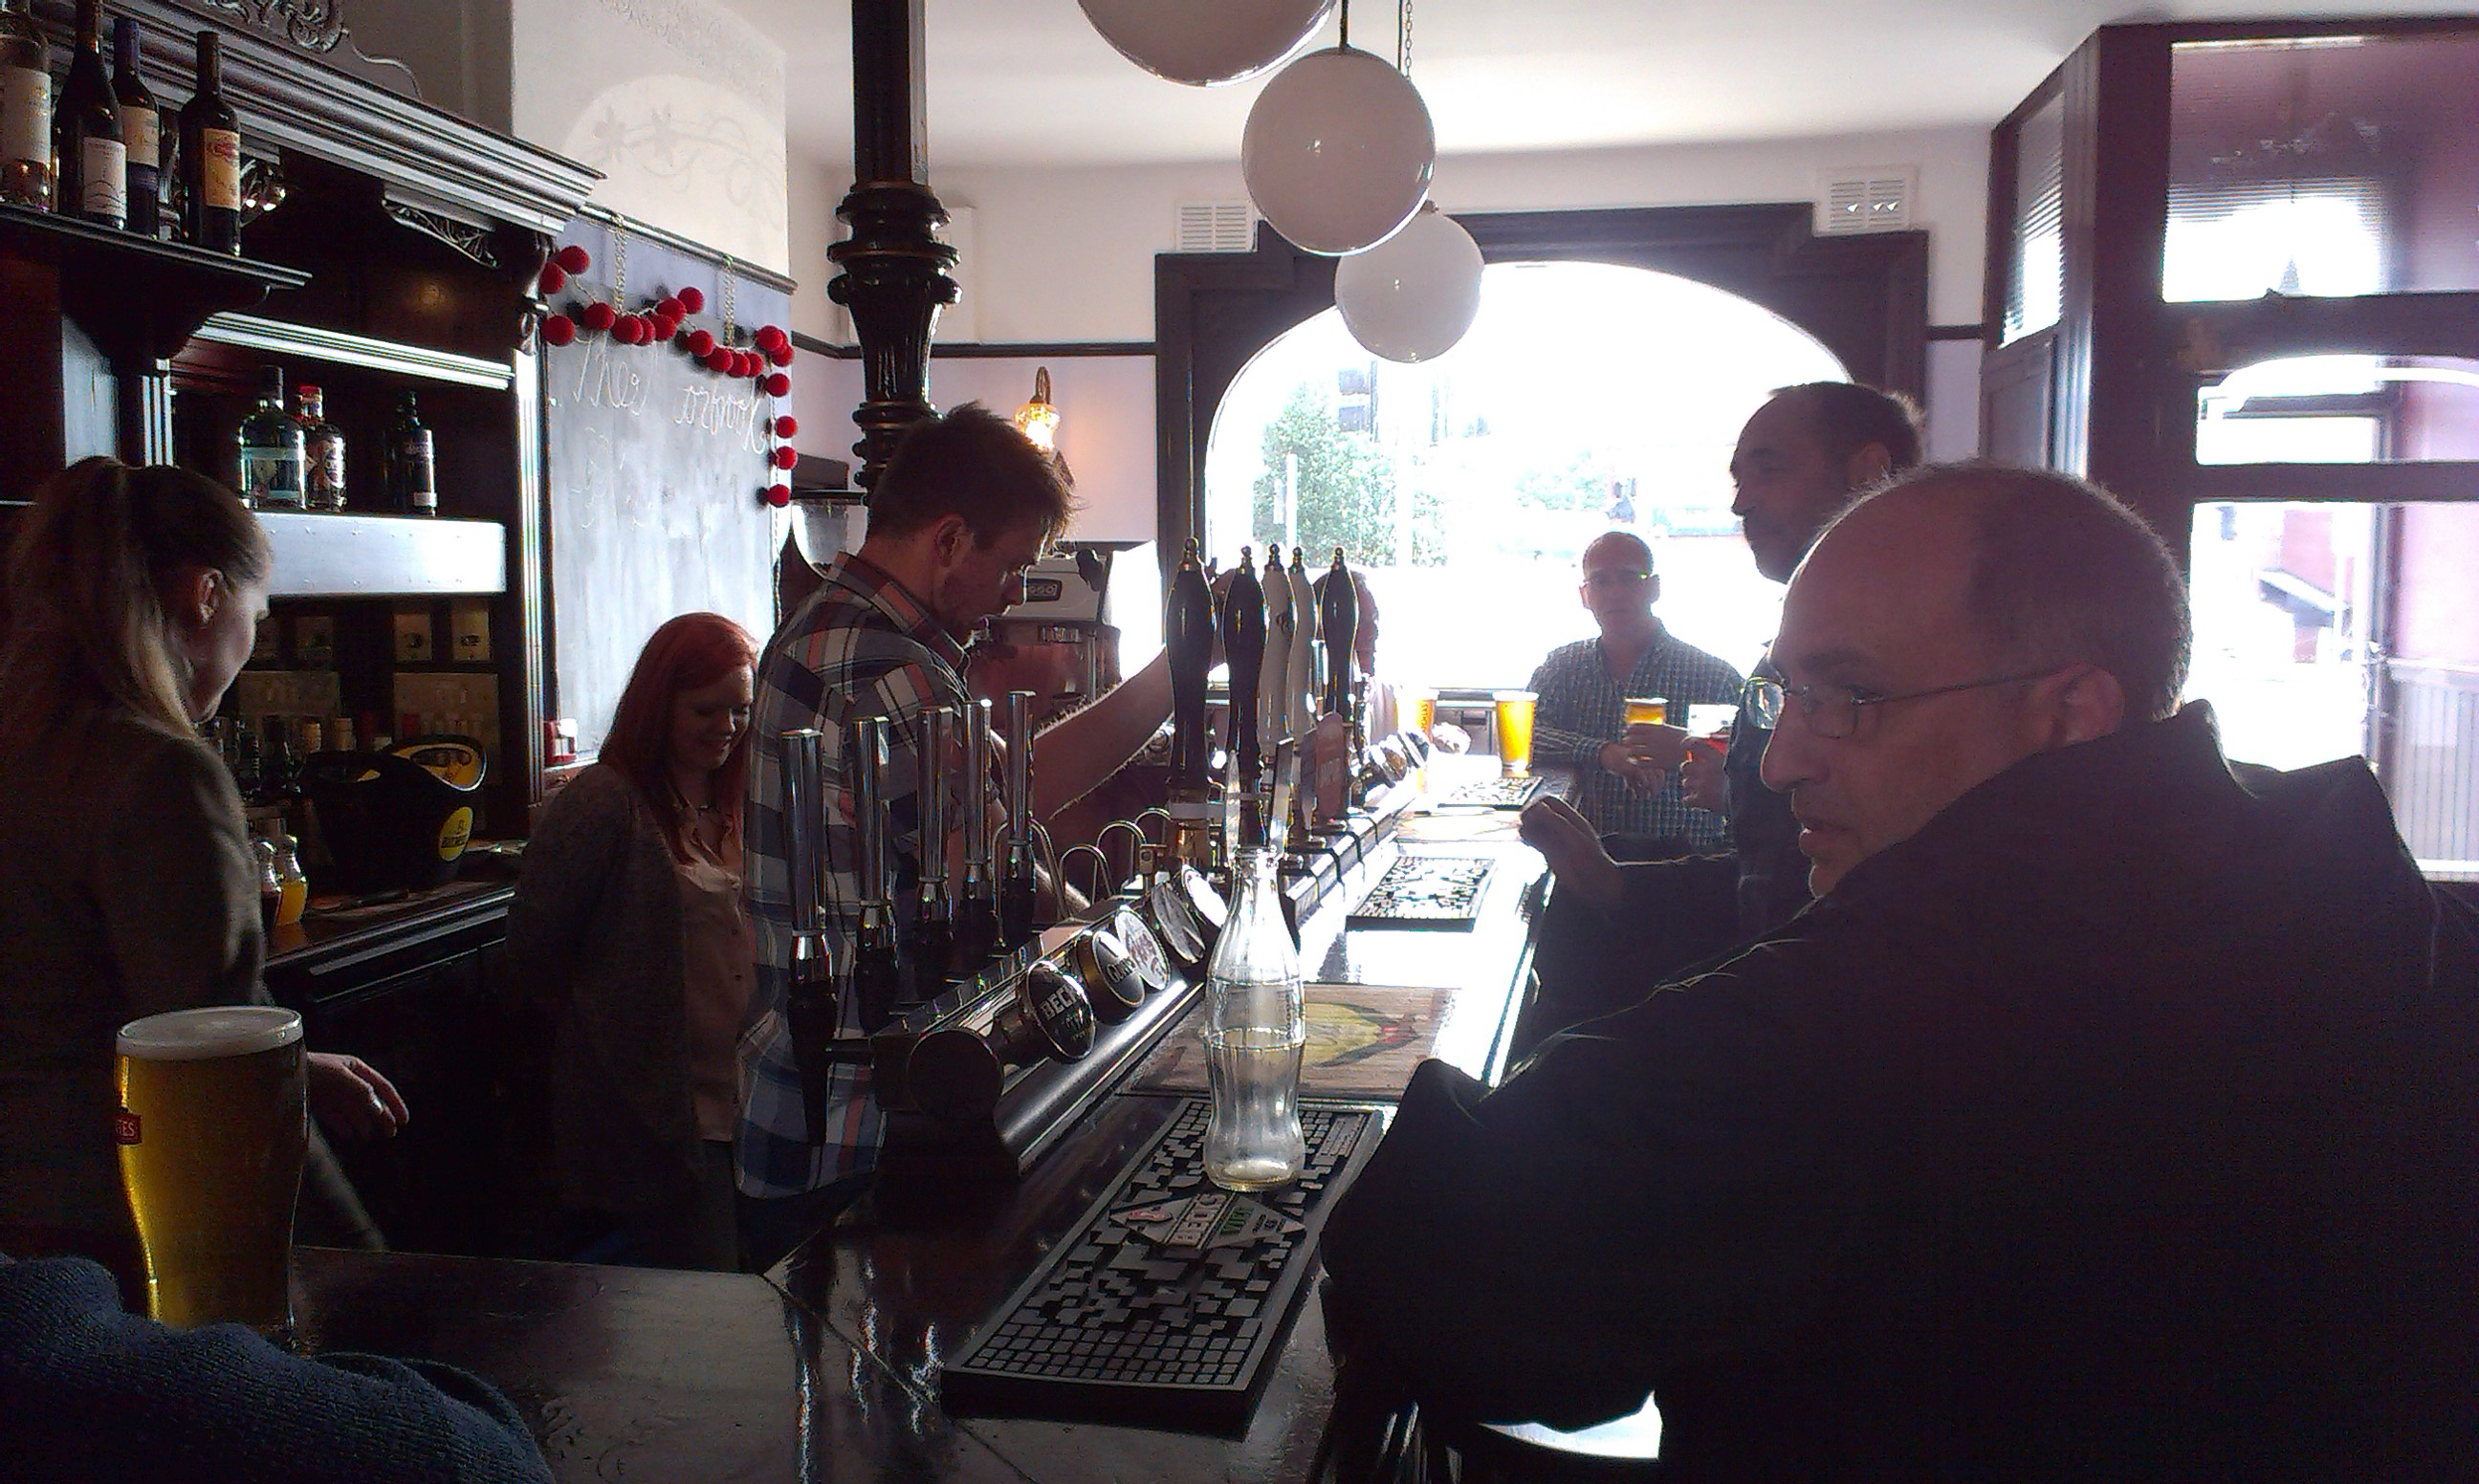 Richard Fisher-Godwin, one of the Moorbrook owners, behind the bar